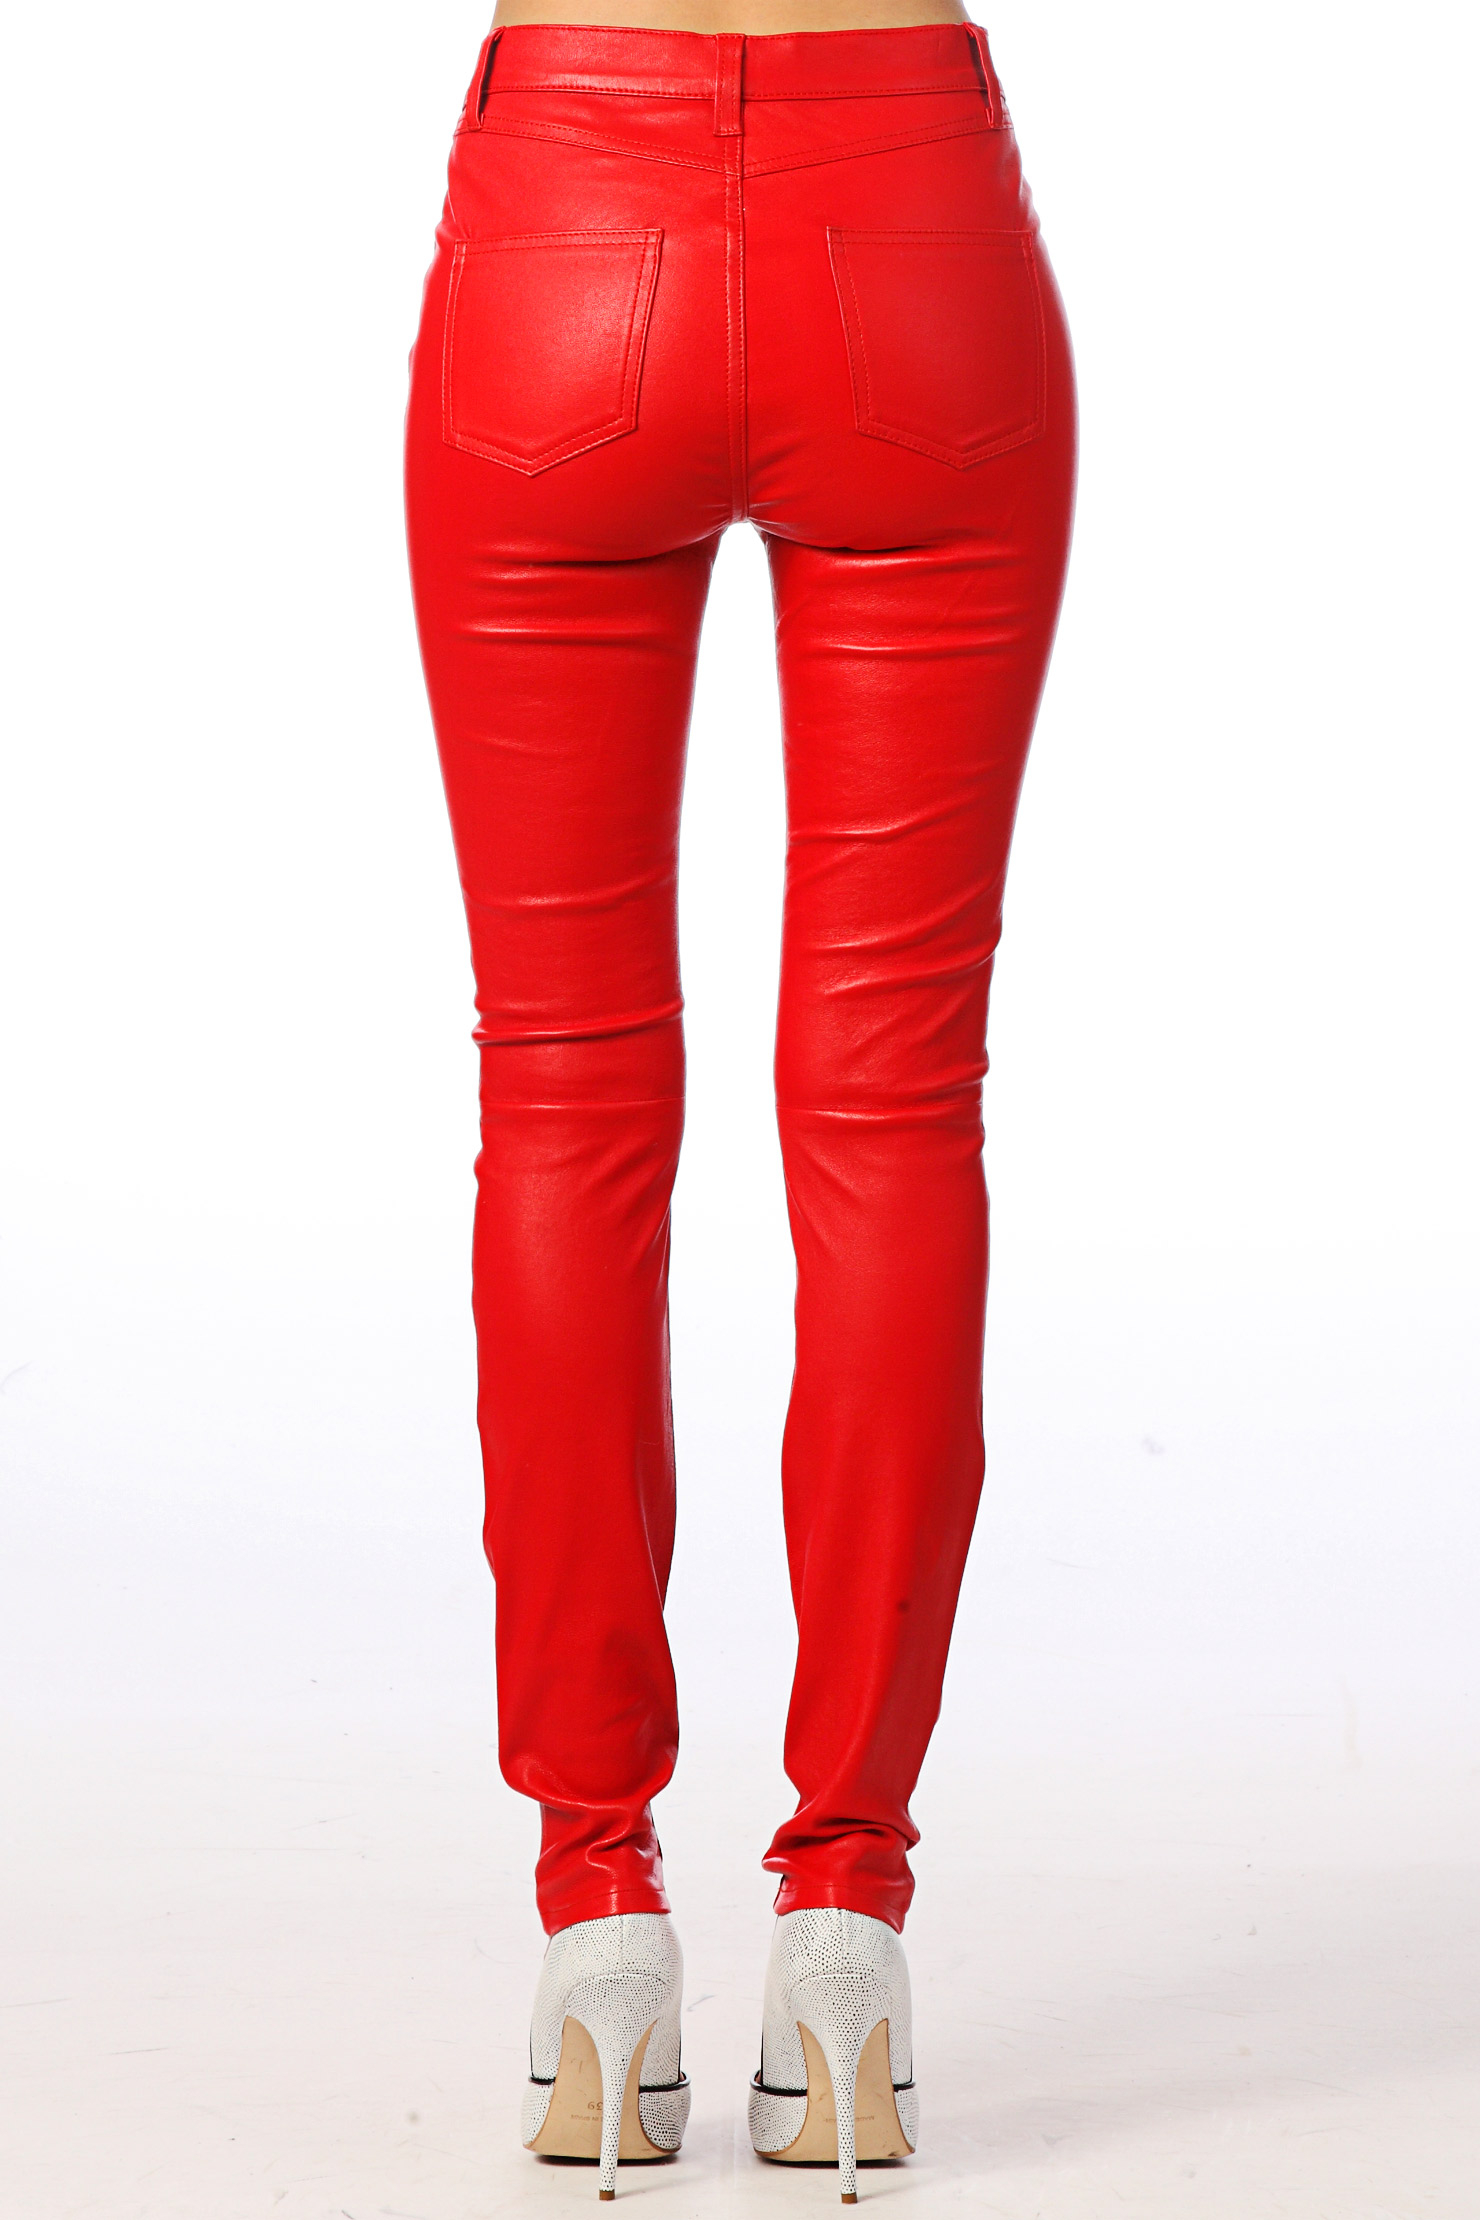 Find great deals on eBay for red leather pants. Shop with confidence.